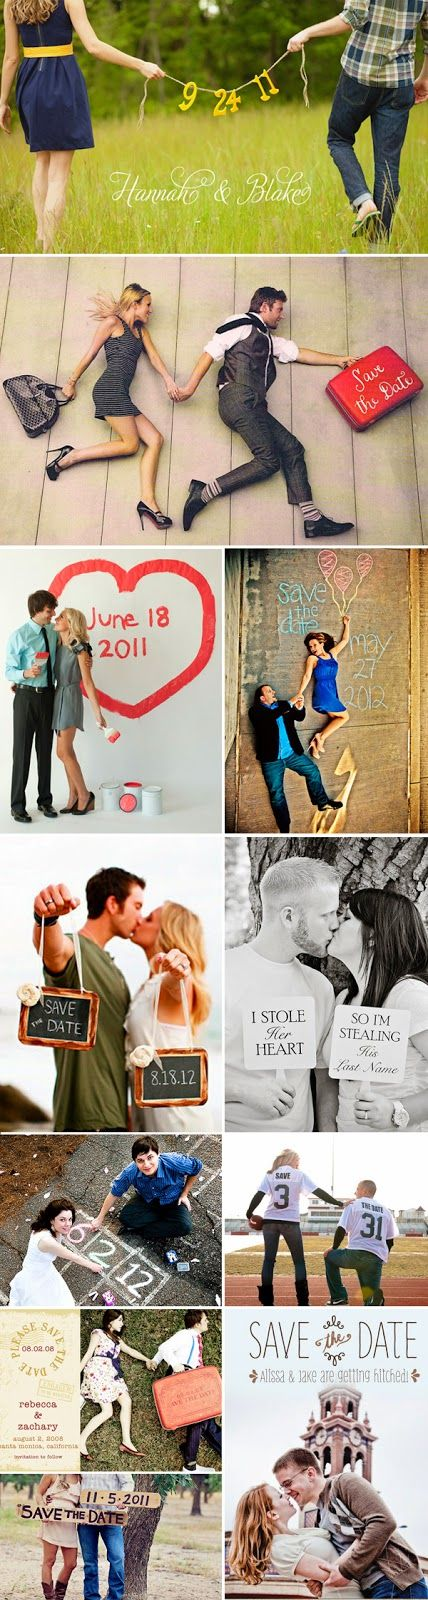 """One of the most exciting things about getting married is sending out your Save the Dates because it's the first time you get to """"officially""""..."""